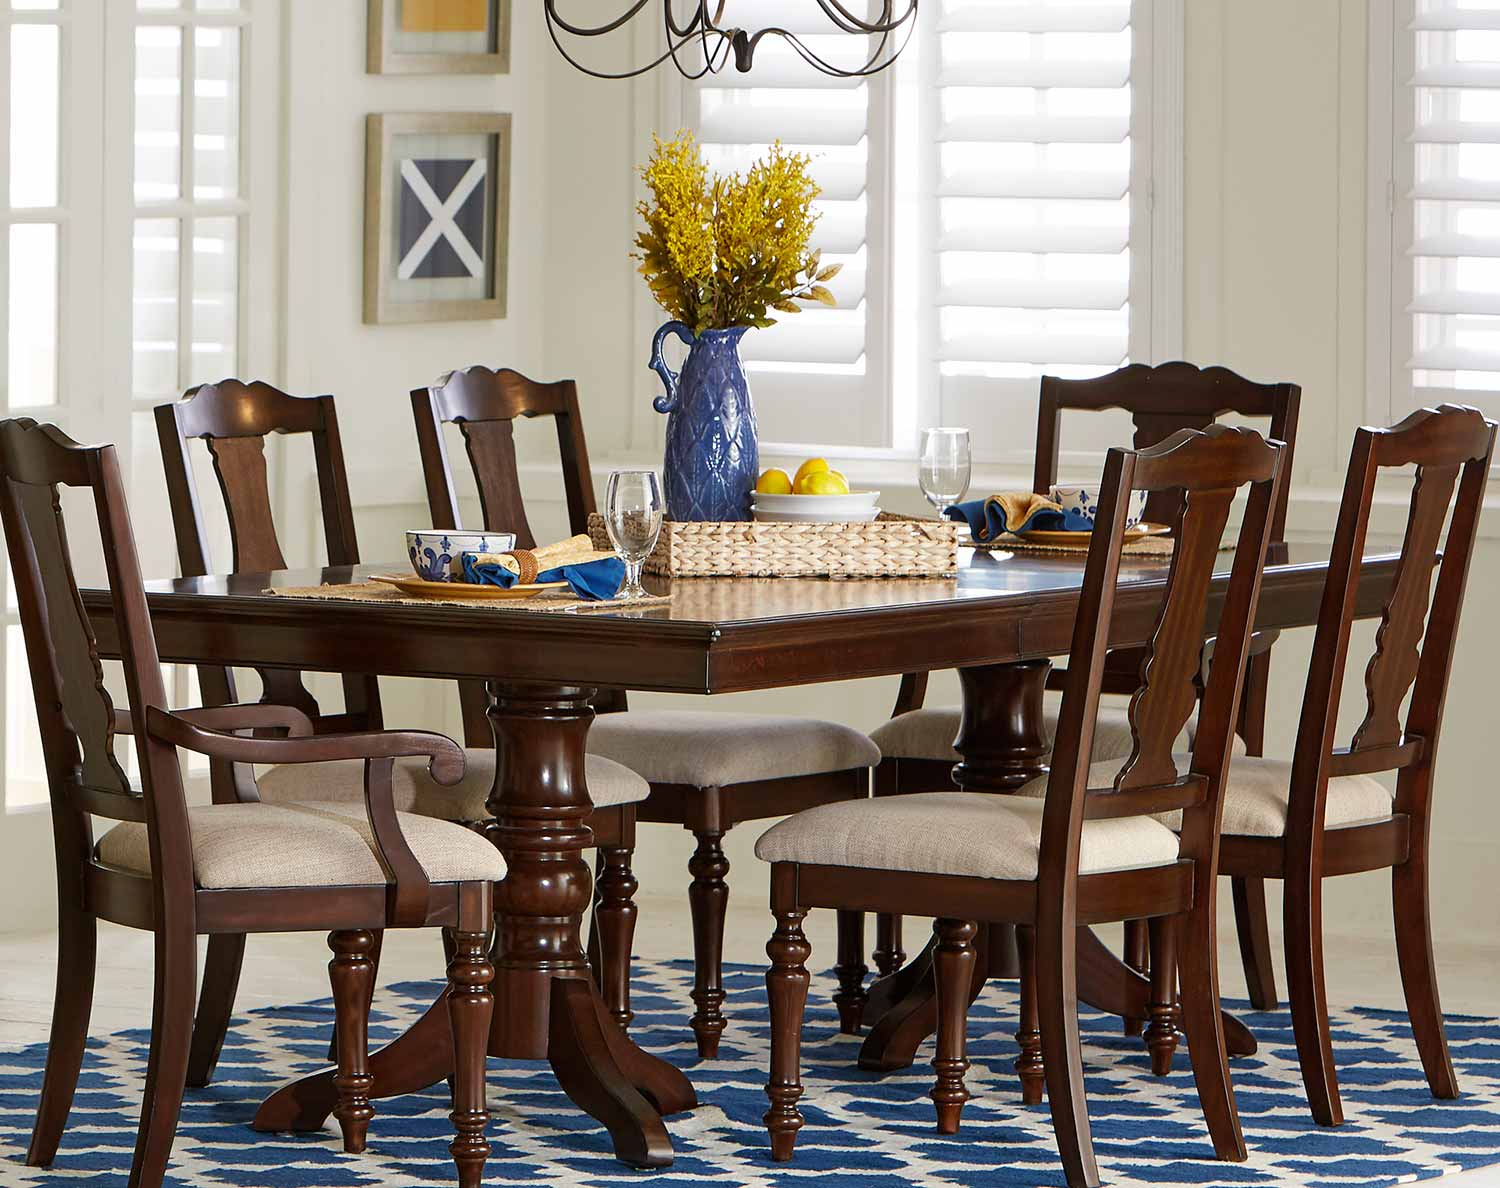 Homelegance Glendive Double Pedestal Dining Table with Leaf - Brown Cherry